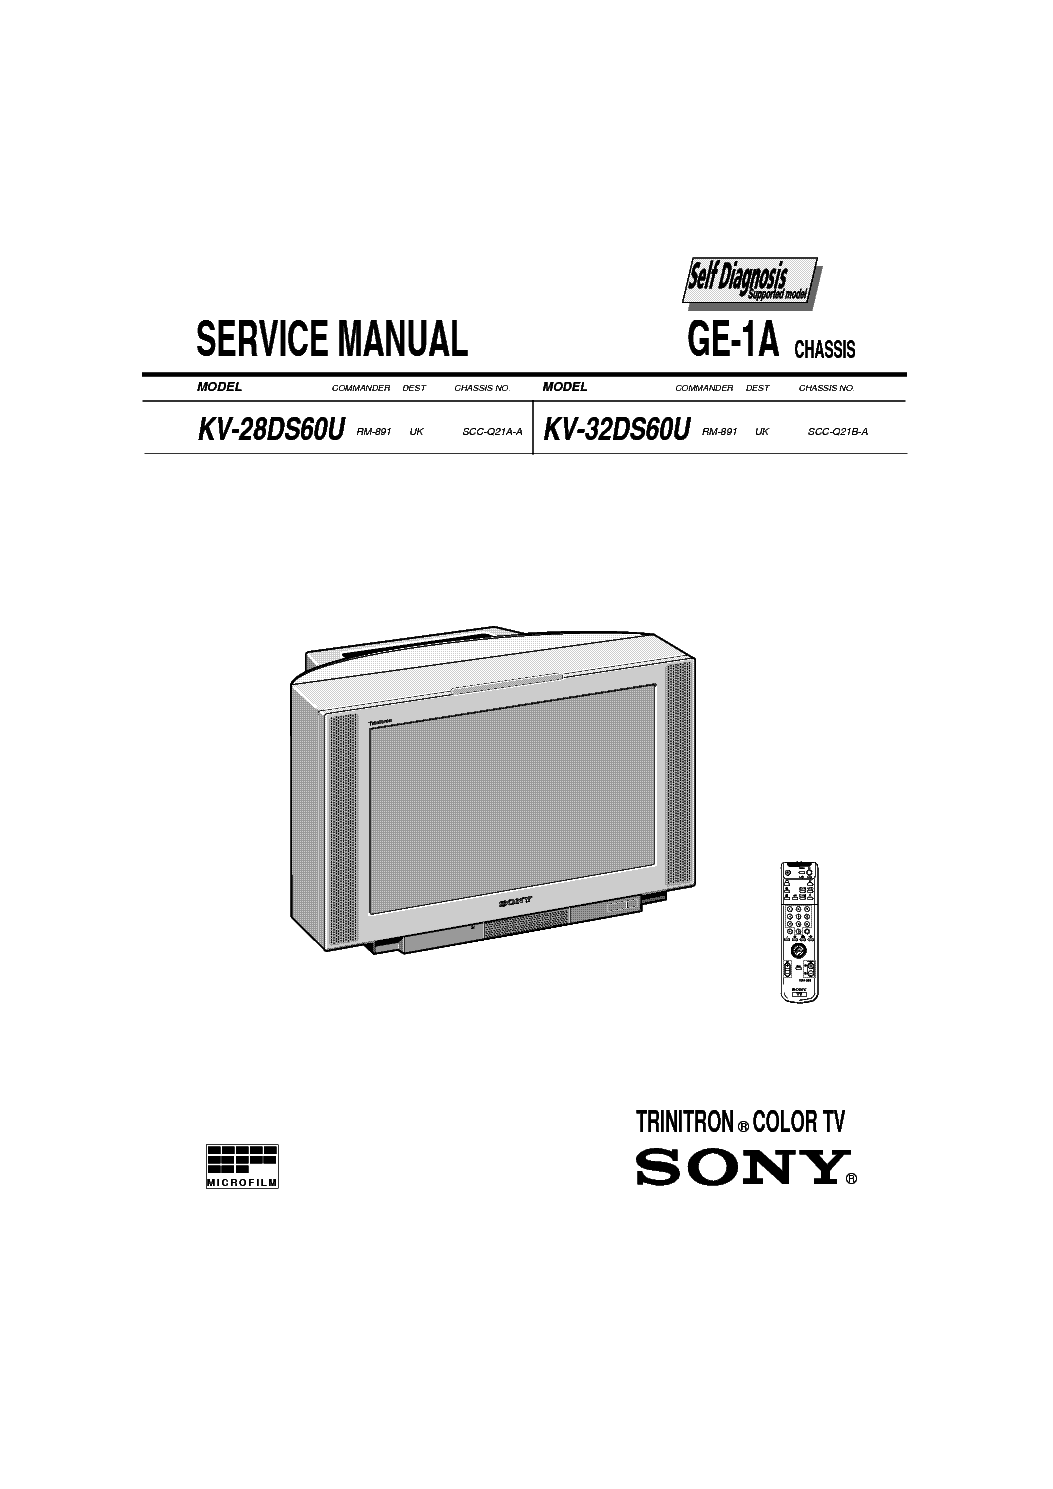 SONY TV KV-28 32DS60-GE-1A CHASSIS SM service manual (1st page)